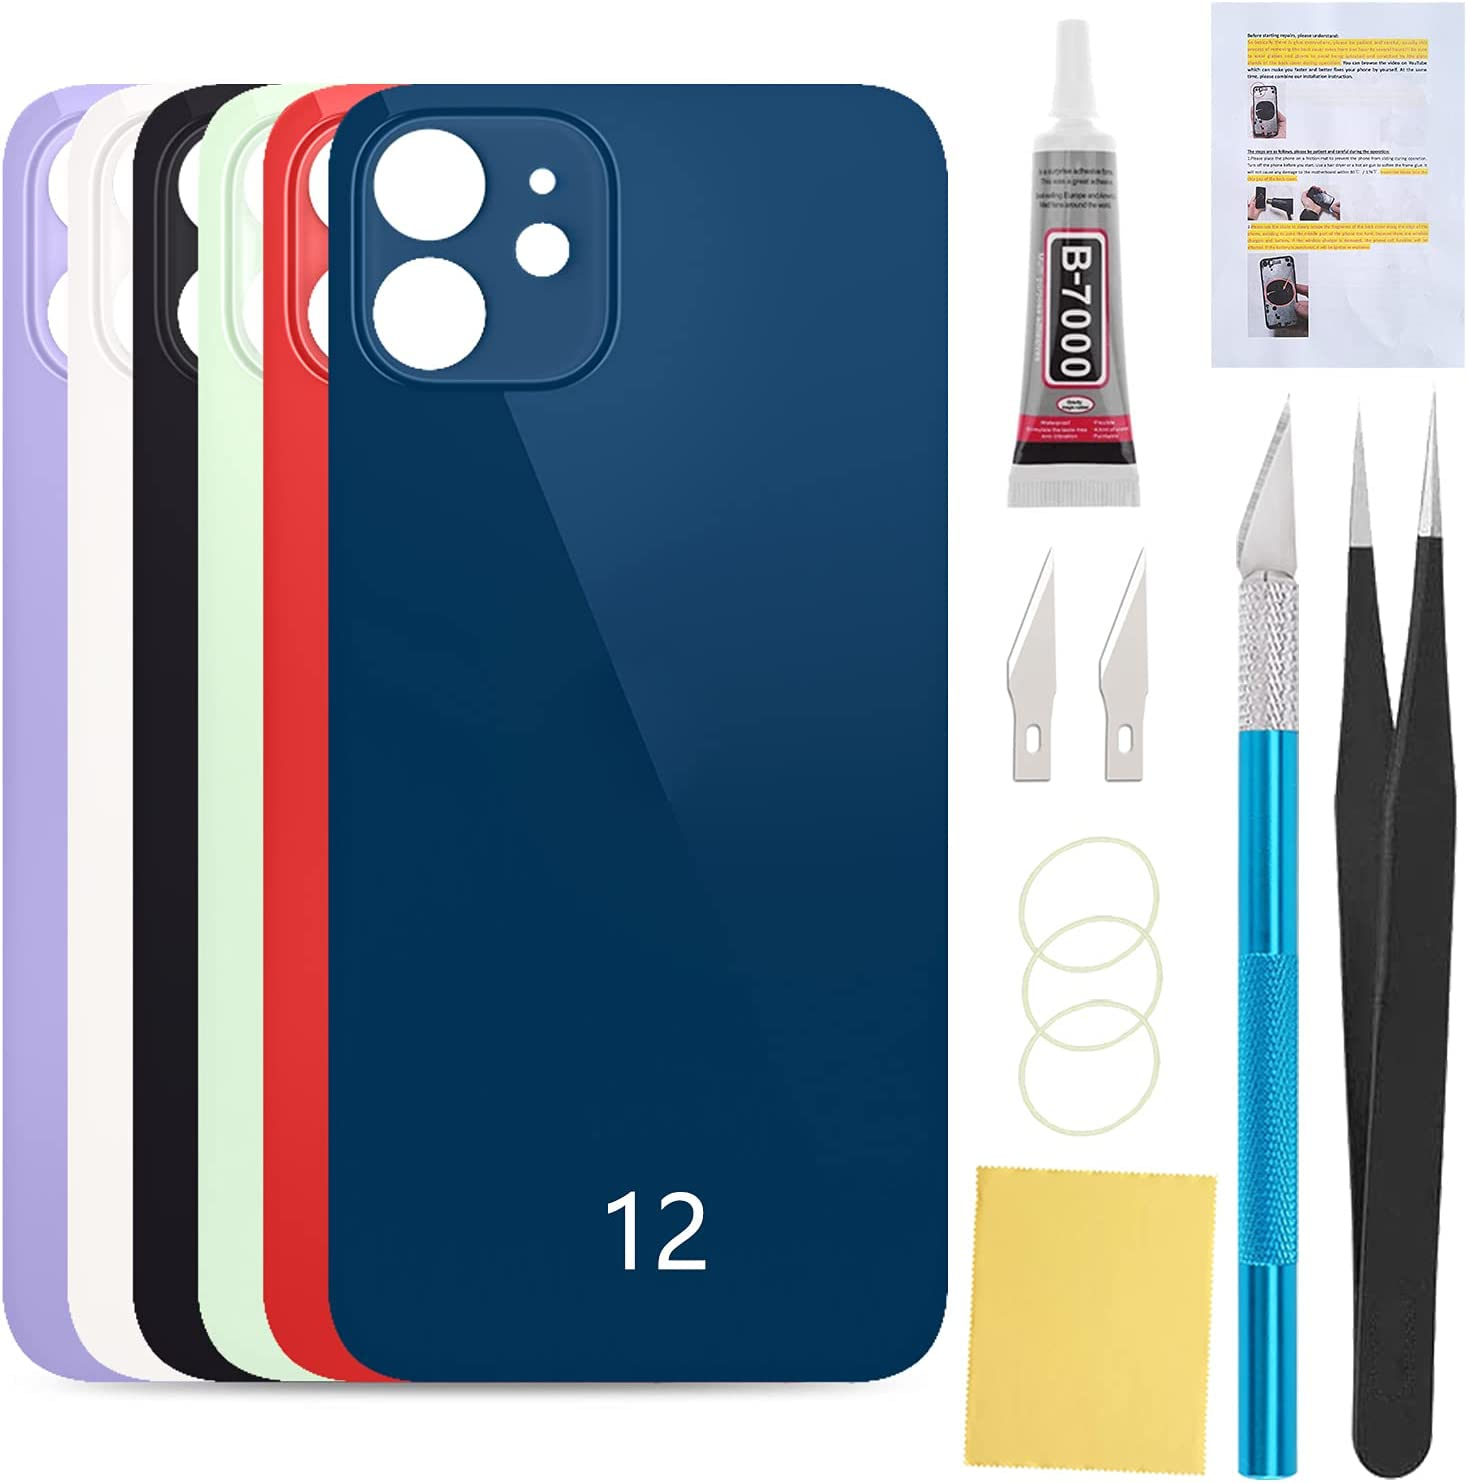 UooFide Back Rear Cover Glass Replacement Compatible with iPhone 12 6.1-Inches All Carriers with Installation Manual + Repair Tool Kit (Blue)